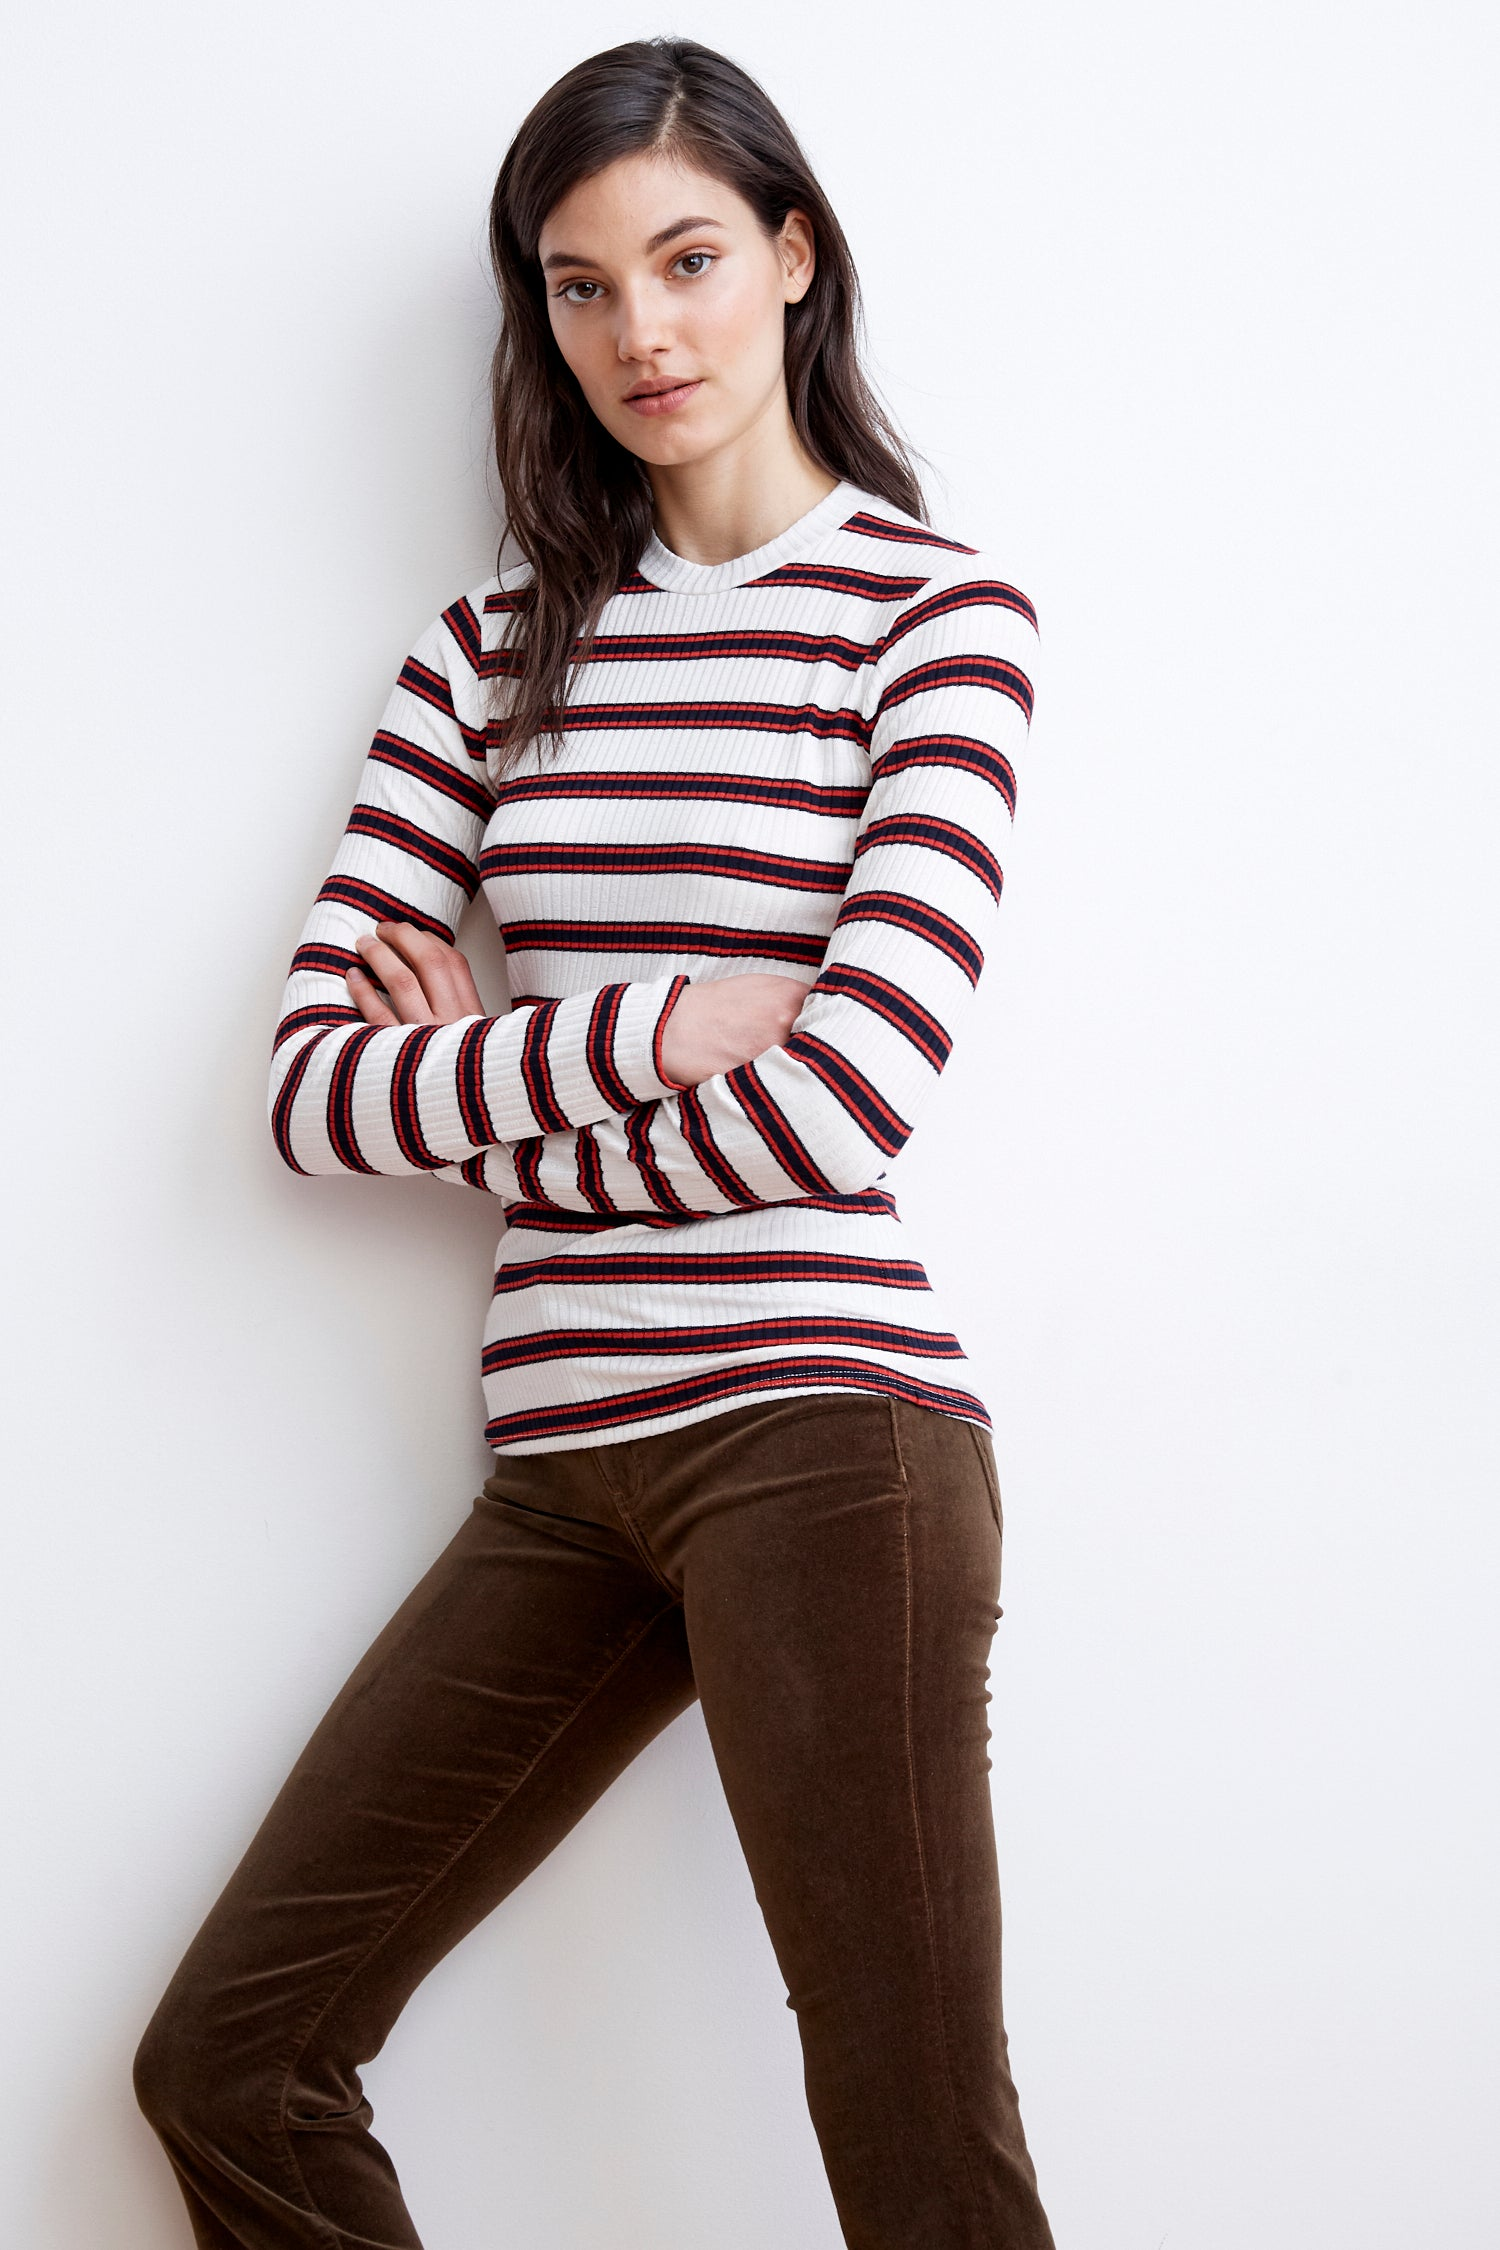 QUEEN RIBBED STRIPE RAYON KNIT TOP IN CREAM